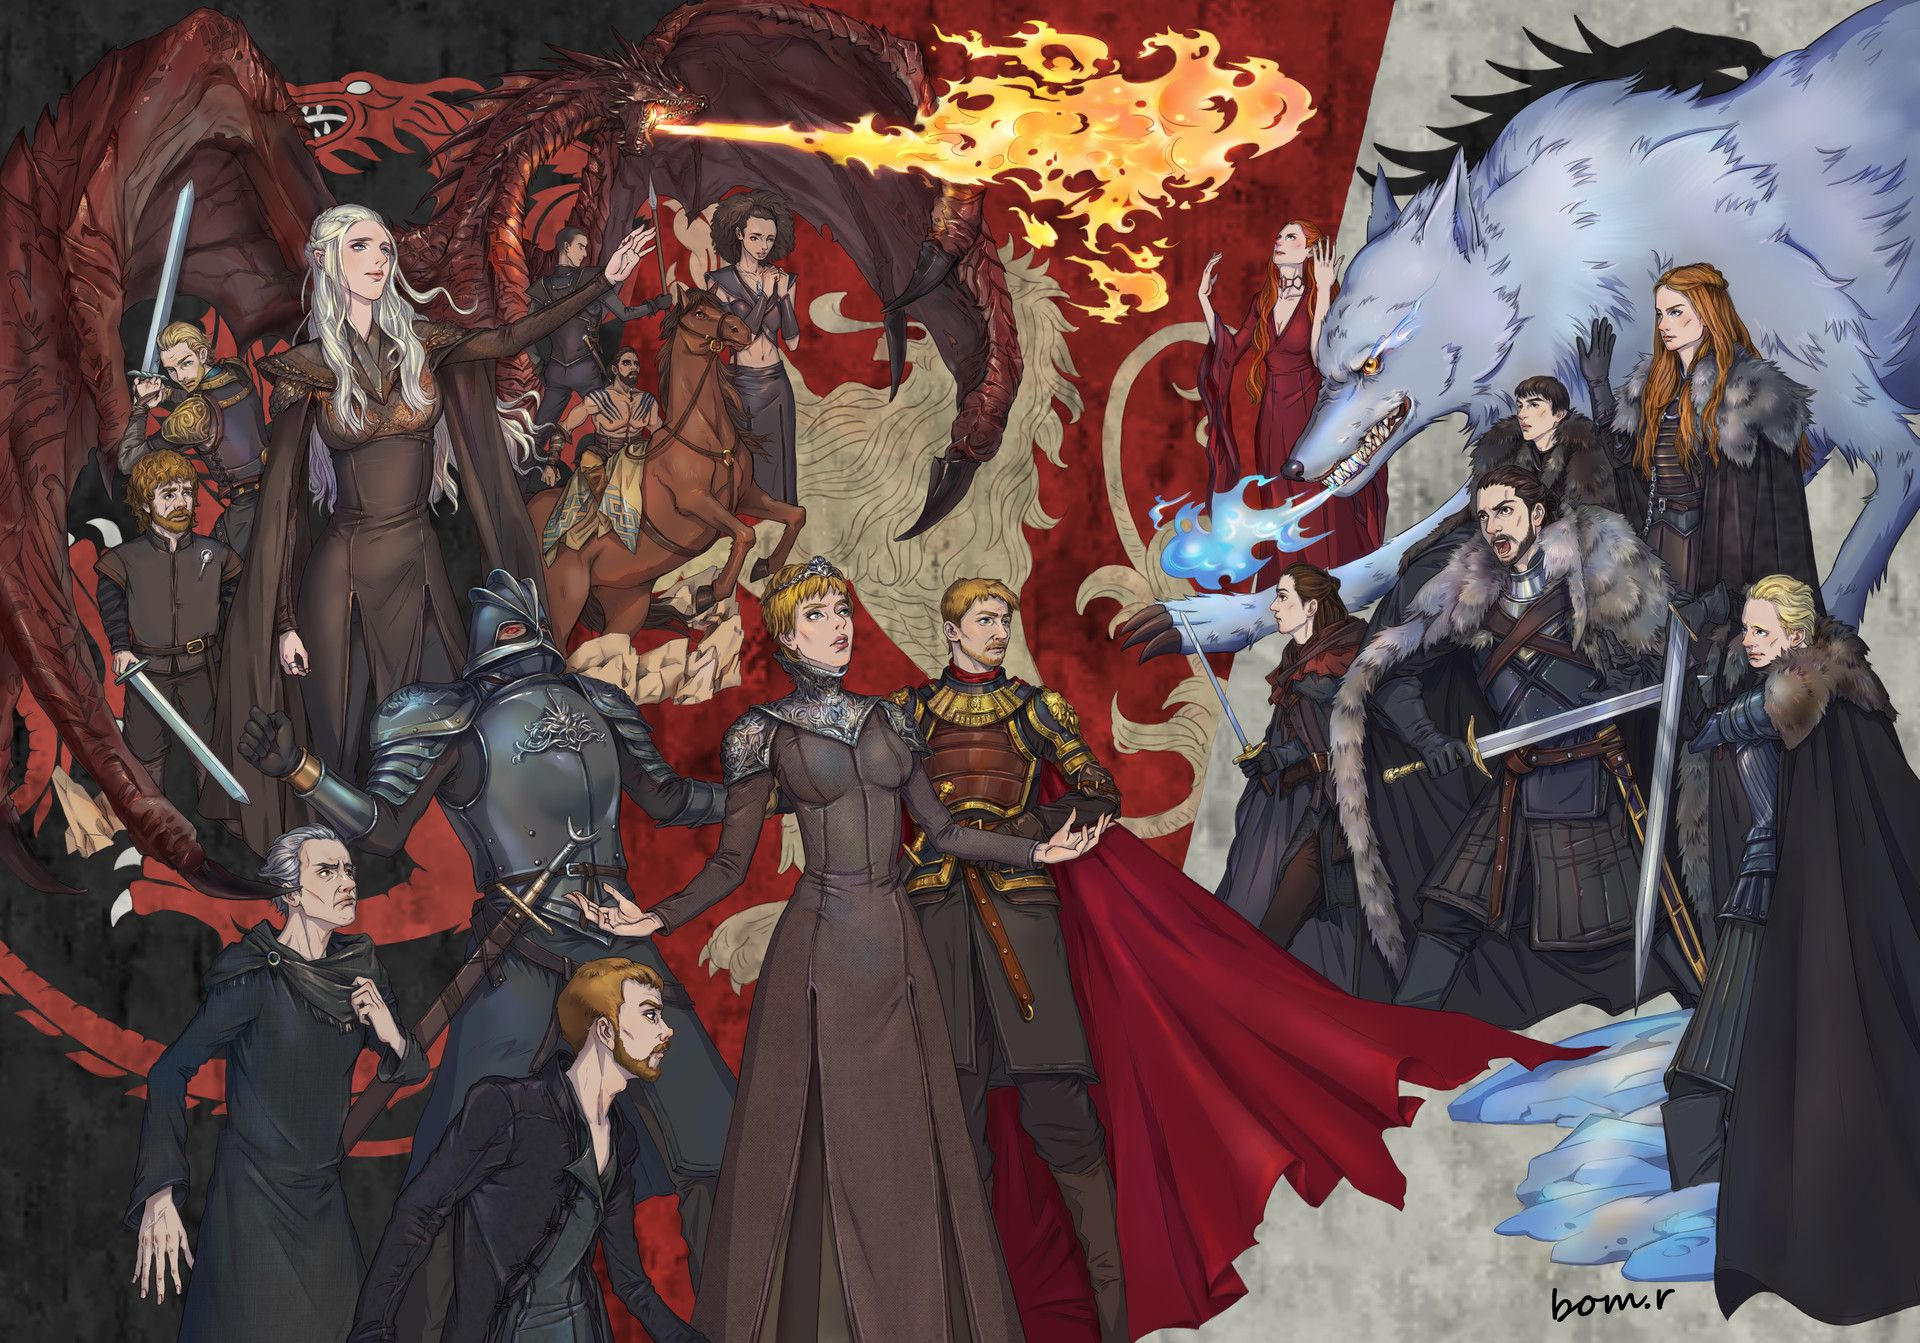 Game of thrones by bom r cdnbtstation submitted by lolta